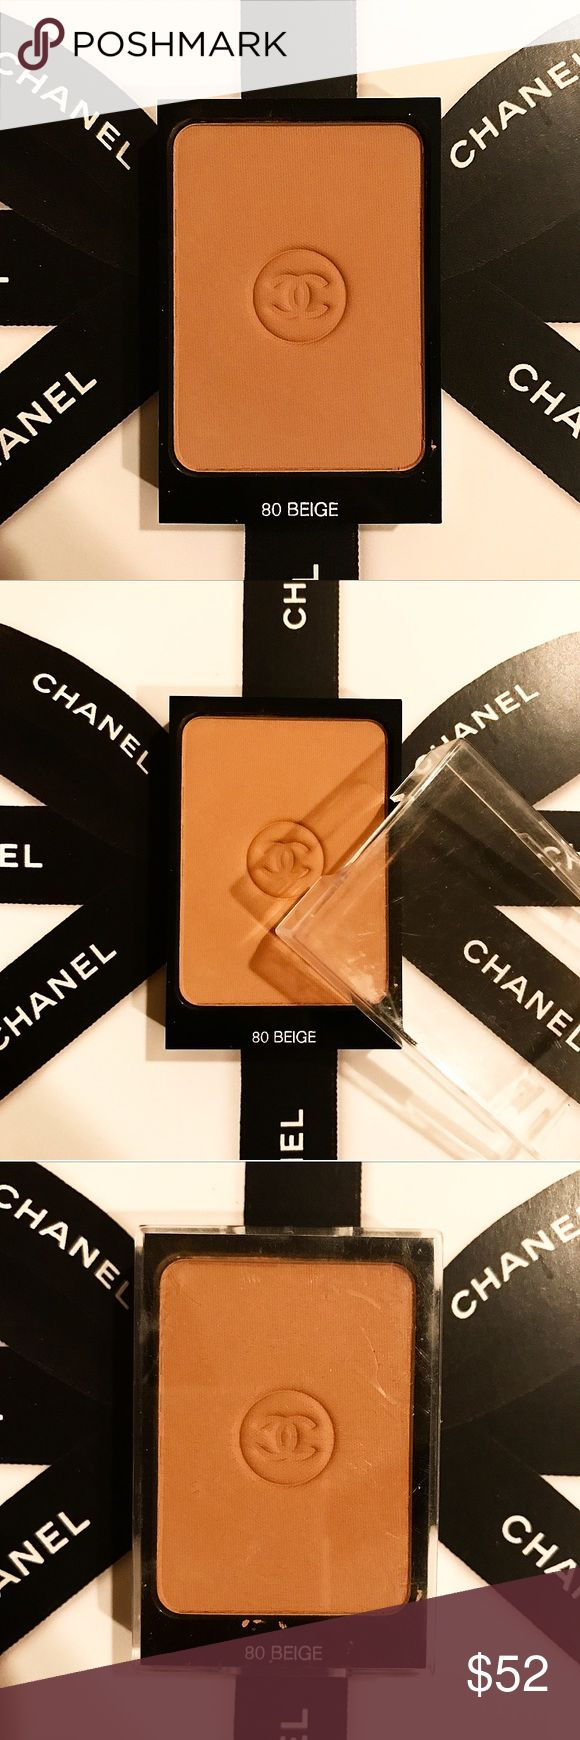 Chanel Foundation Powder Brand New And Authentic Chanel